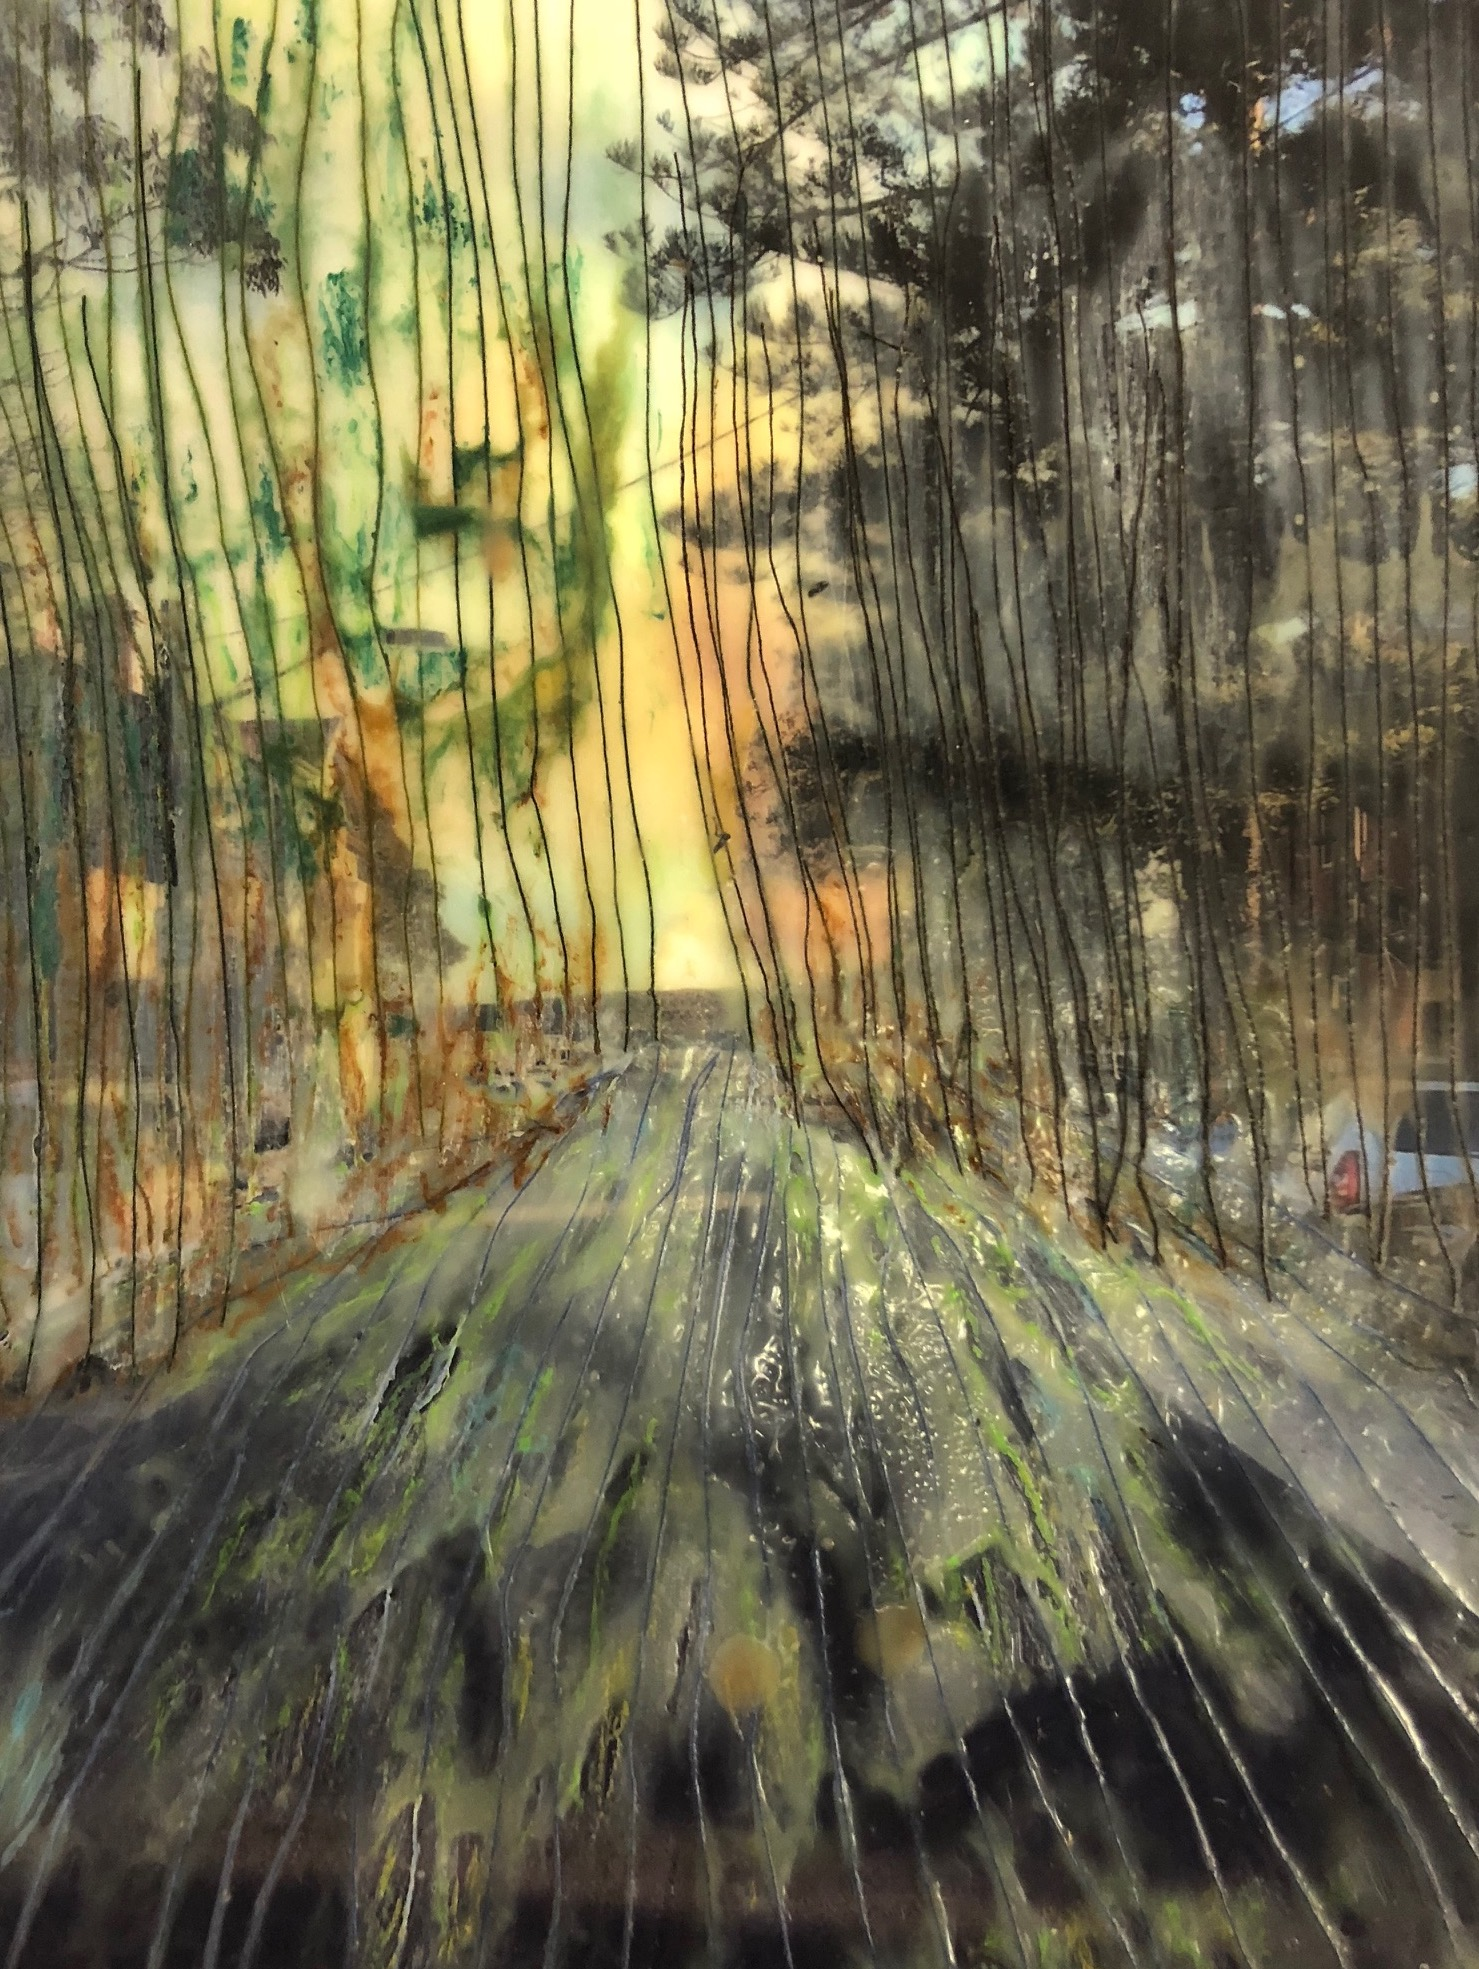 photographic transparency, thread, oil pastel, encaustic, glass